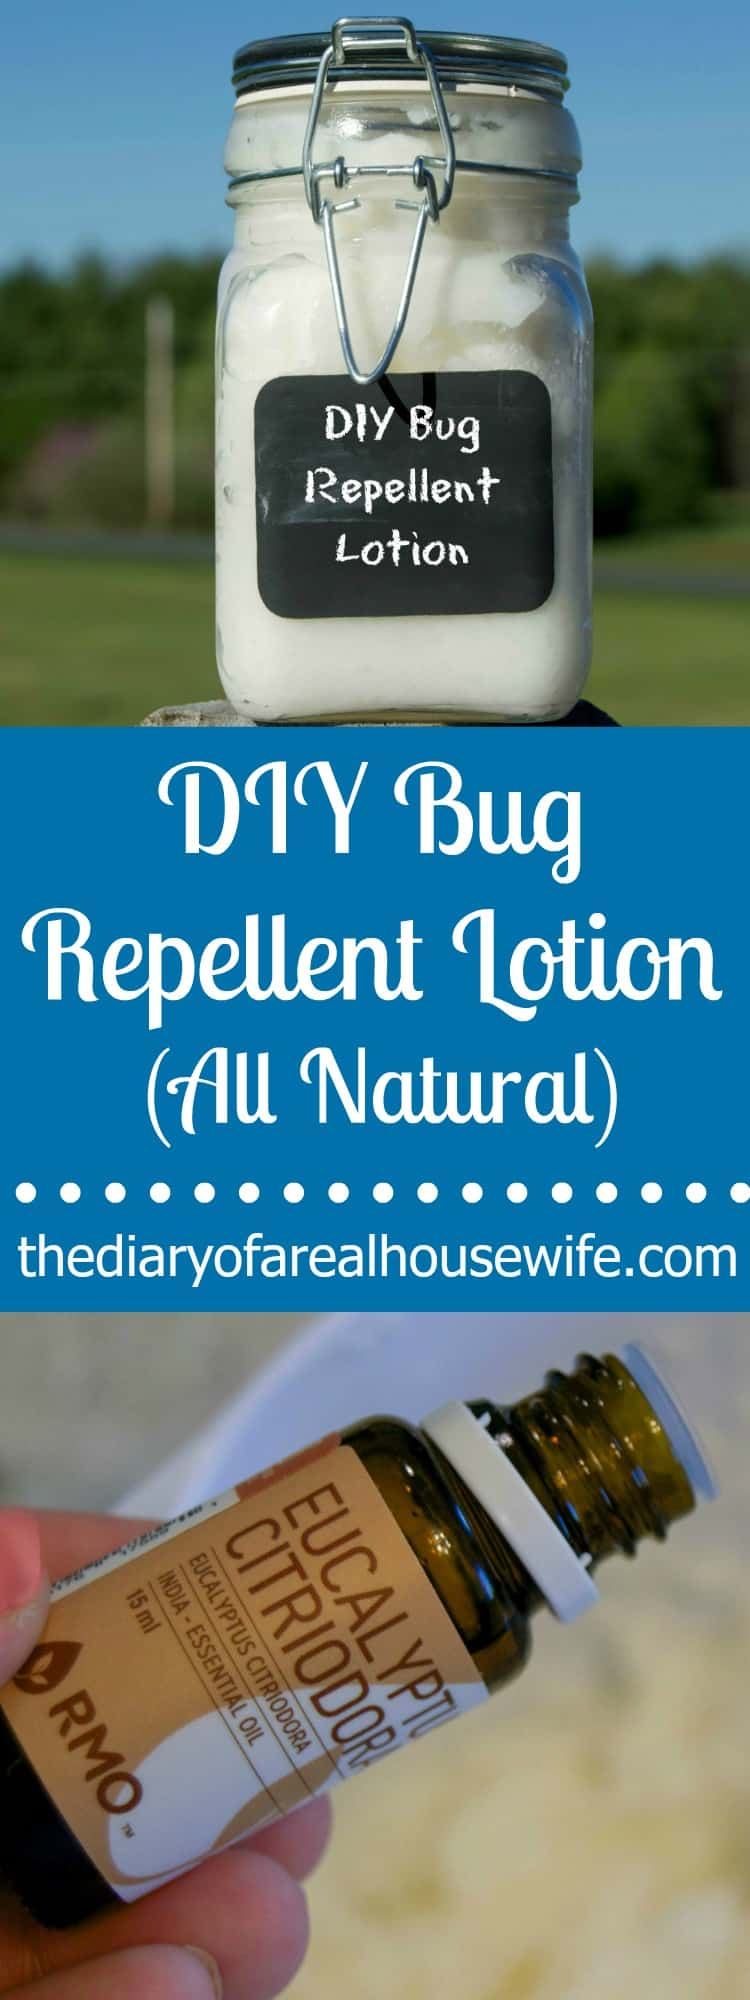 all natural insect repellant For an all-natural way to get mosquitos off the guest list at your next outdoor gathering try this simple mosquito repellant mason jar the active ingredient is lemon eucalyptus oil which is recommended by the cdc as an effective all-natural bug repellant.